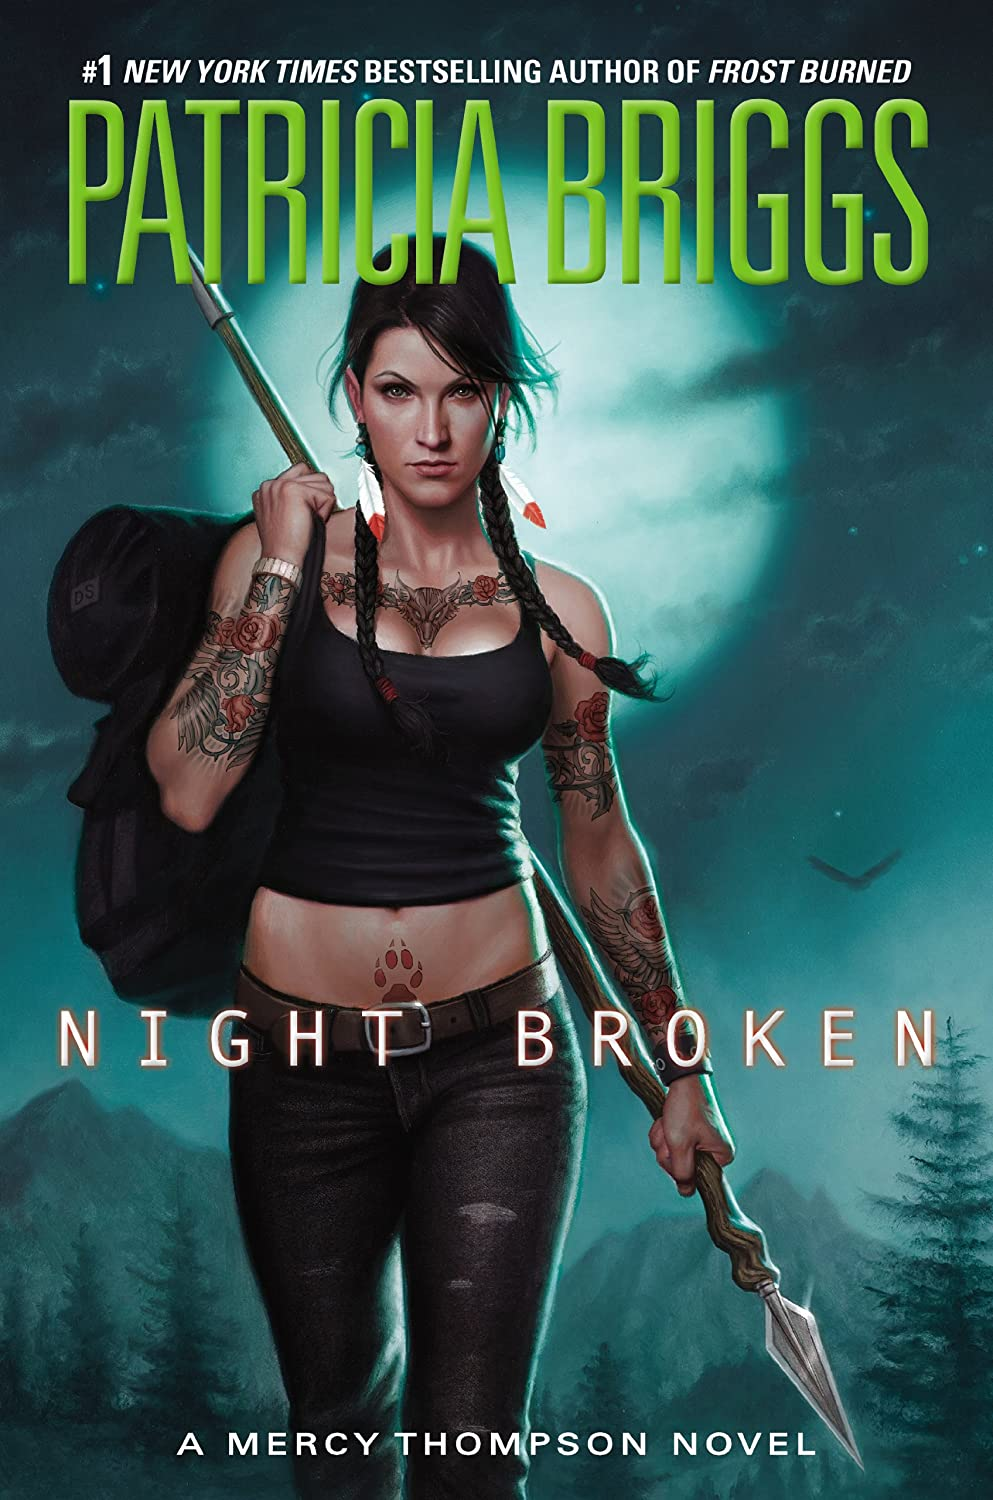 https://www.goodreads.com/book/show/17562900-night-broken?ac=1